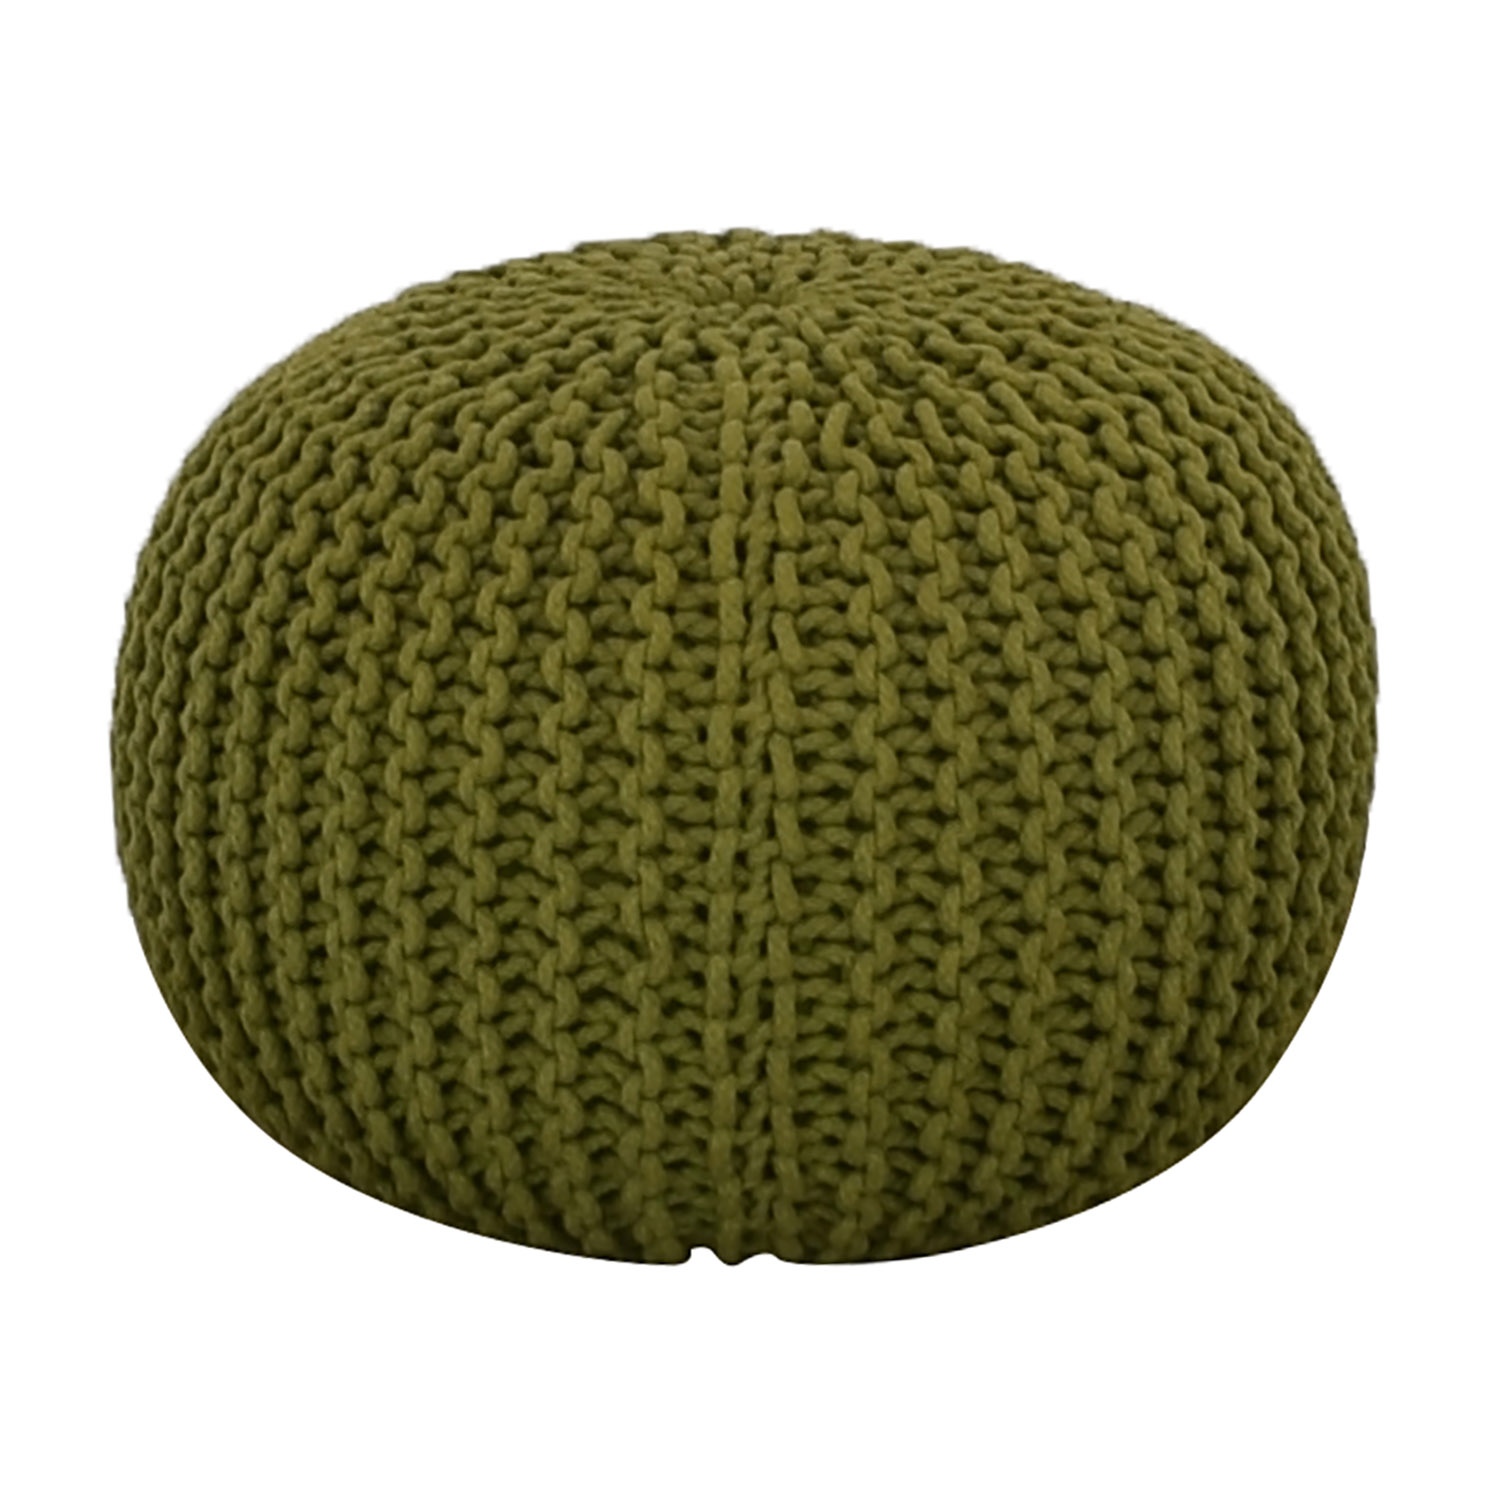 CB2 CB2 Green Rope Puff Ottoman for sale